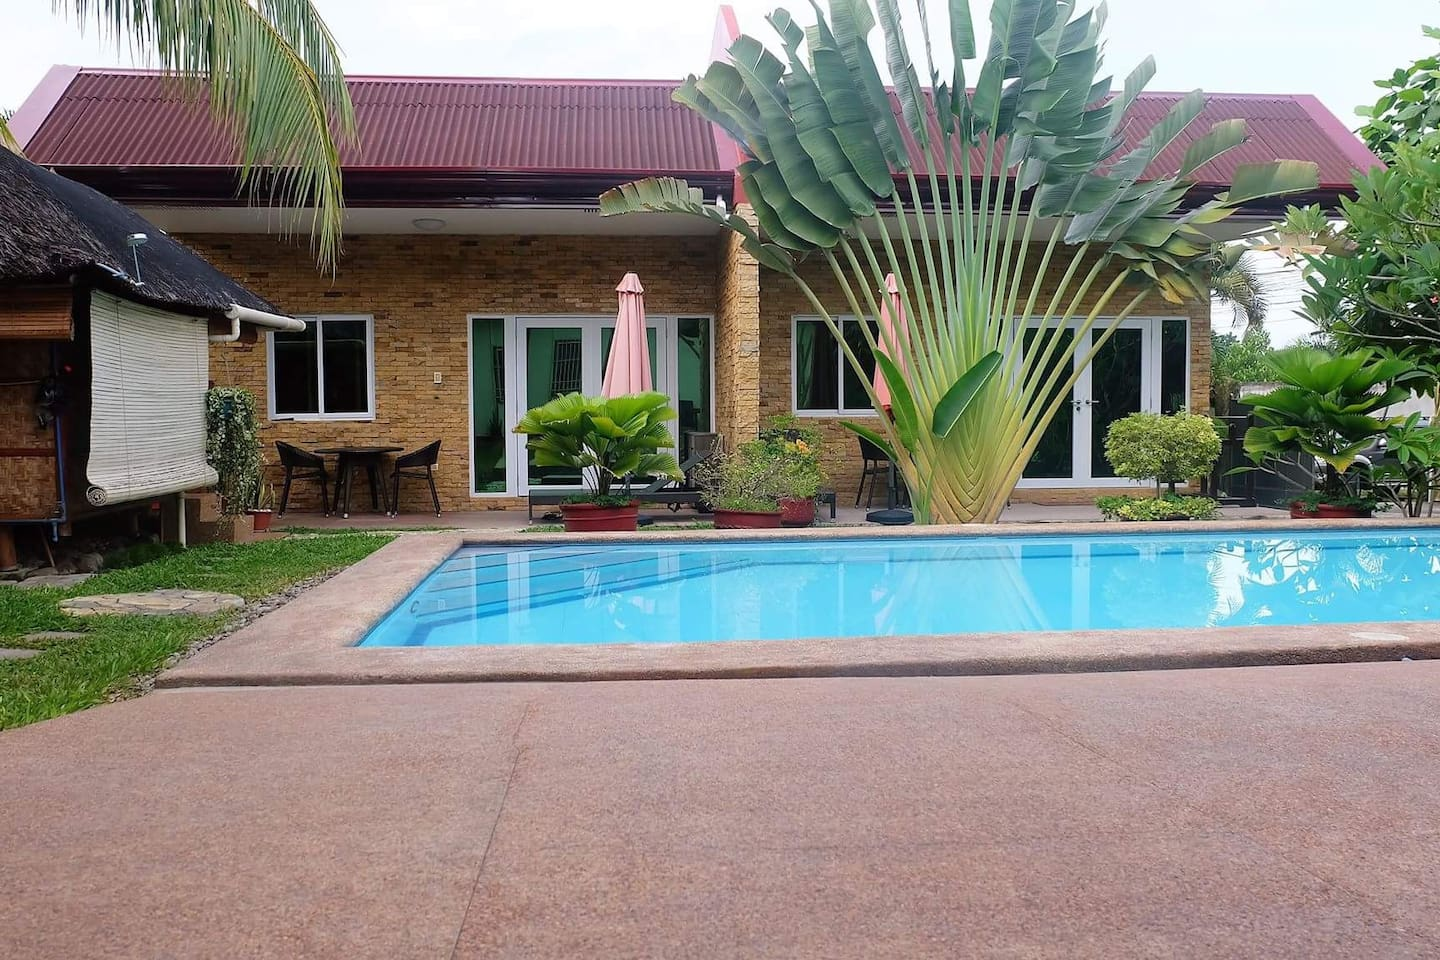 The private space for rent is just in front of the outdoor pool.